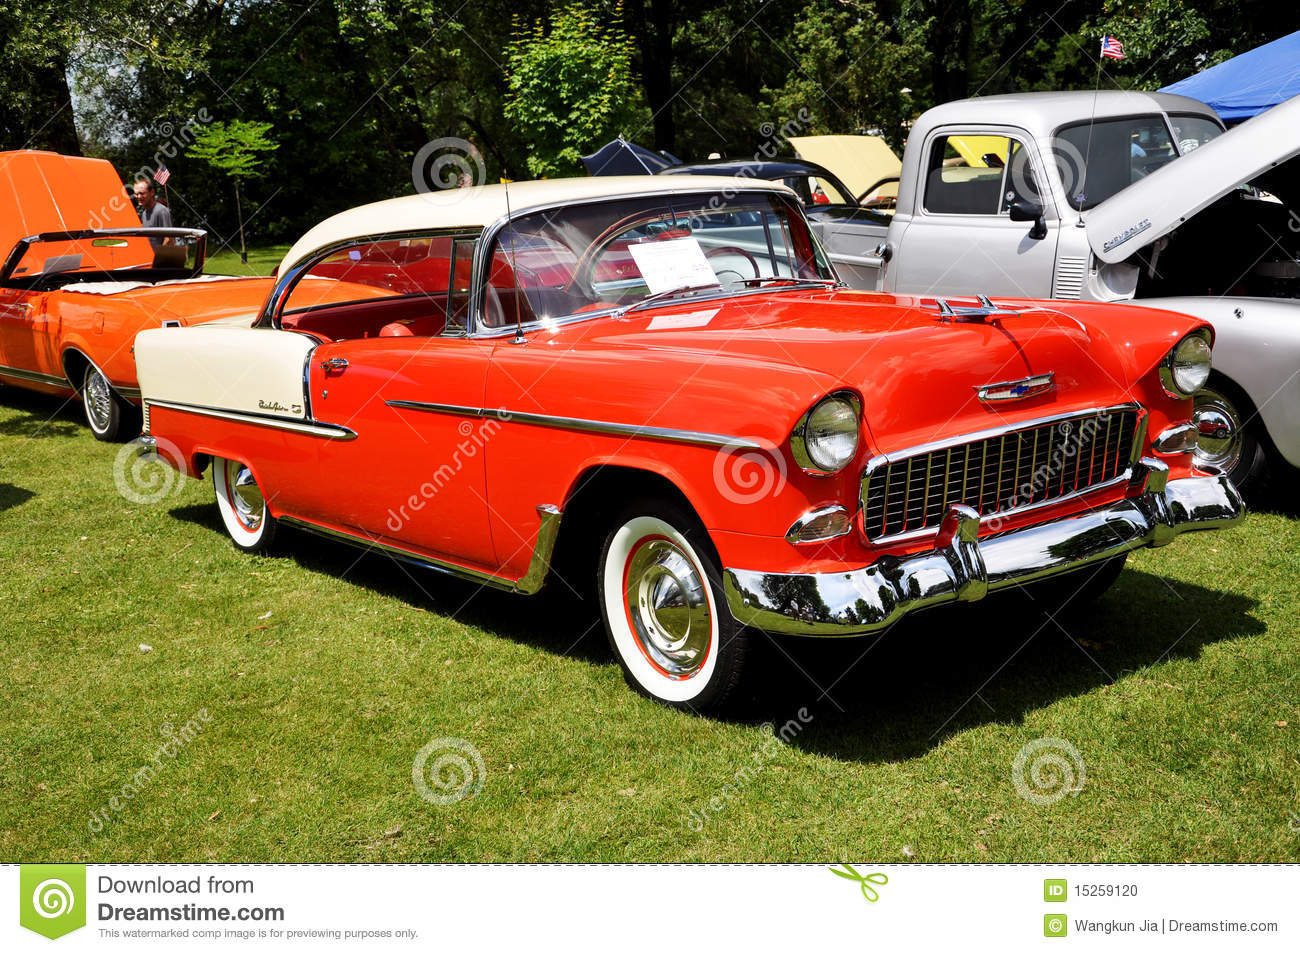 Chevrolet Bel Air In Antique Car Show Editorial Image Image Of - Antique car show